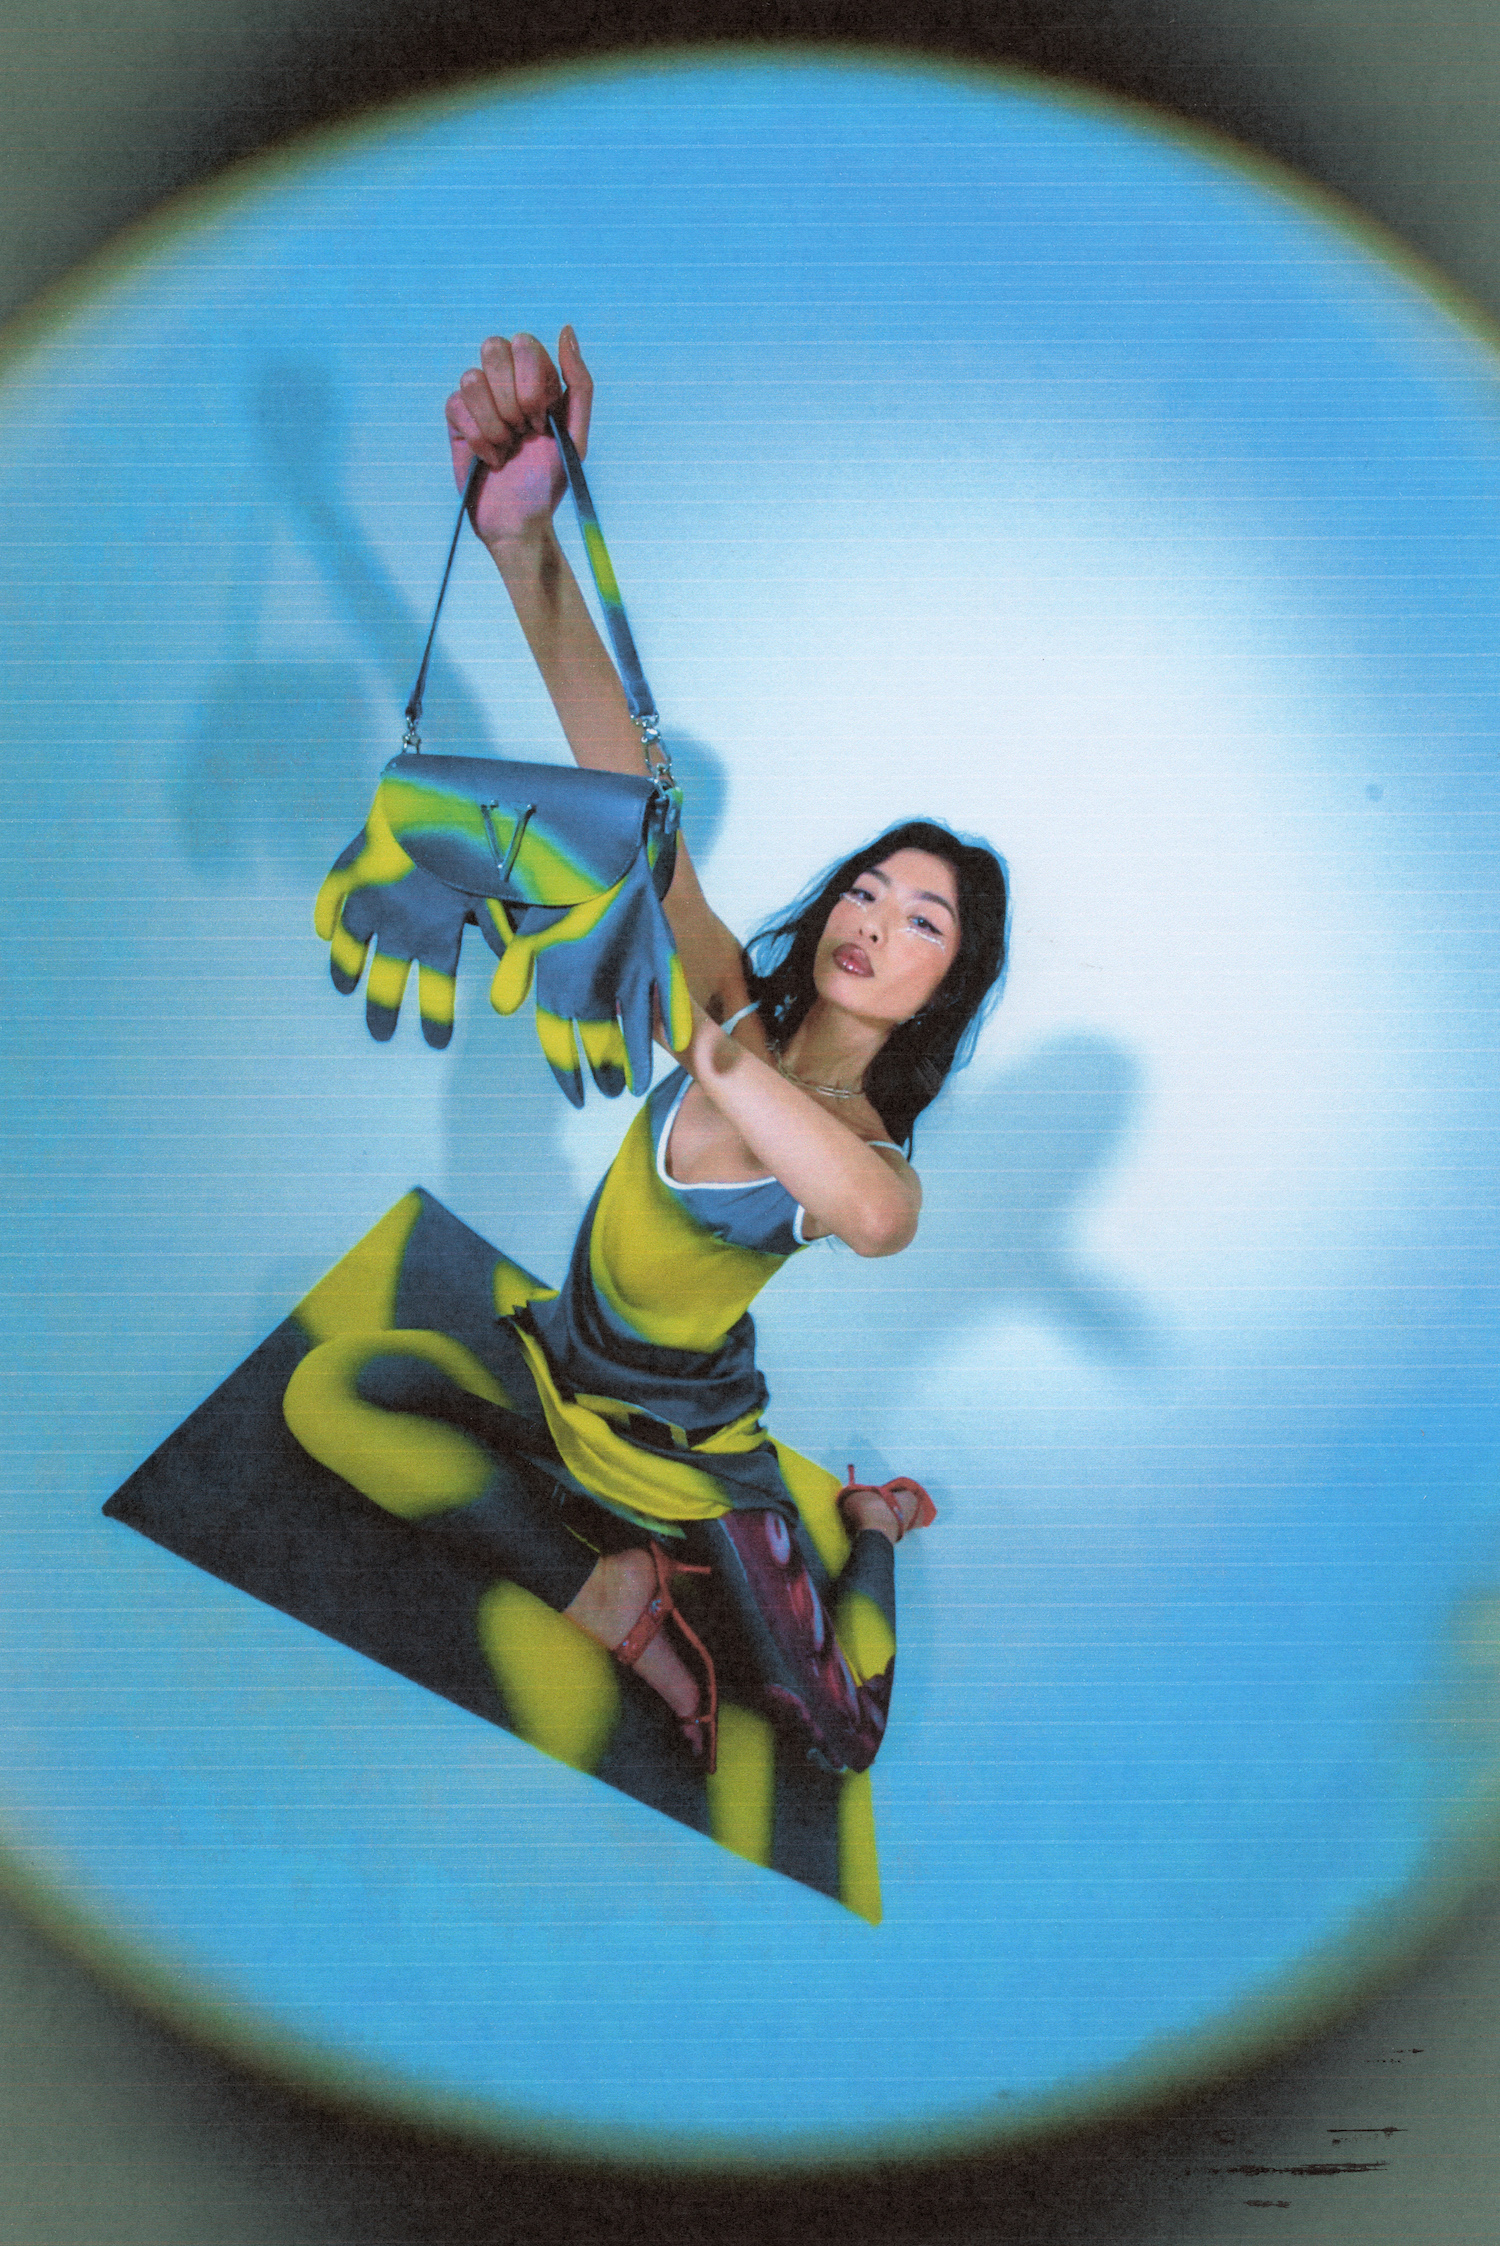 A woman wearing a tie-dye spaghetti strap dress and leggings by Vivendii, holding a Vivendii baguette bag up to the camera